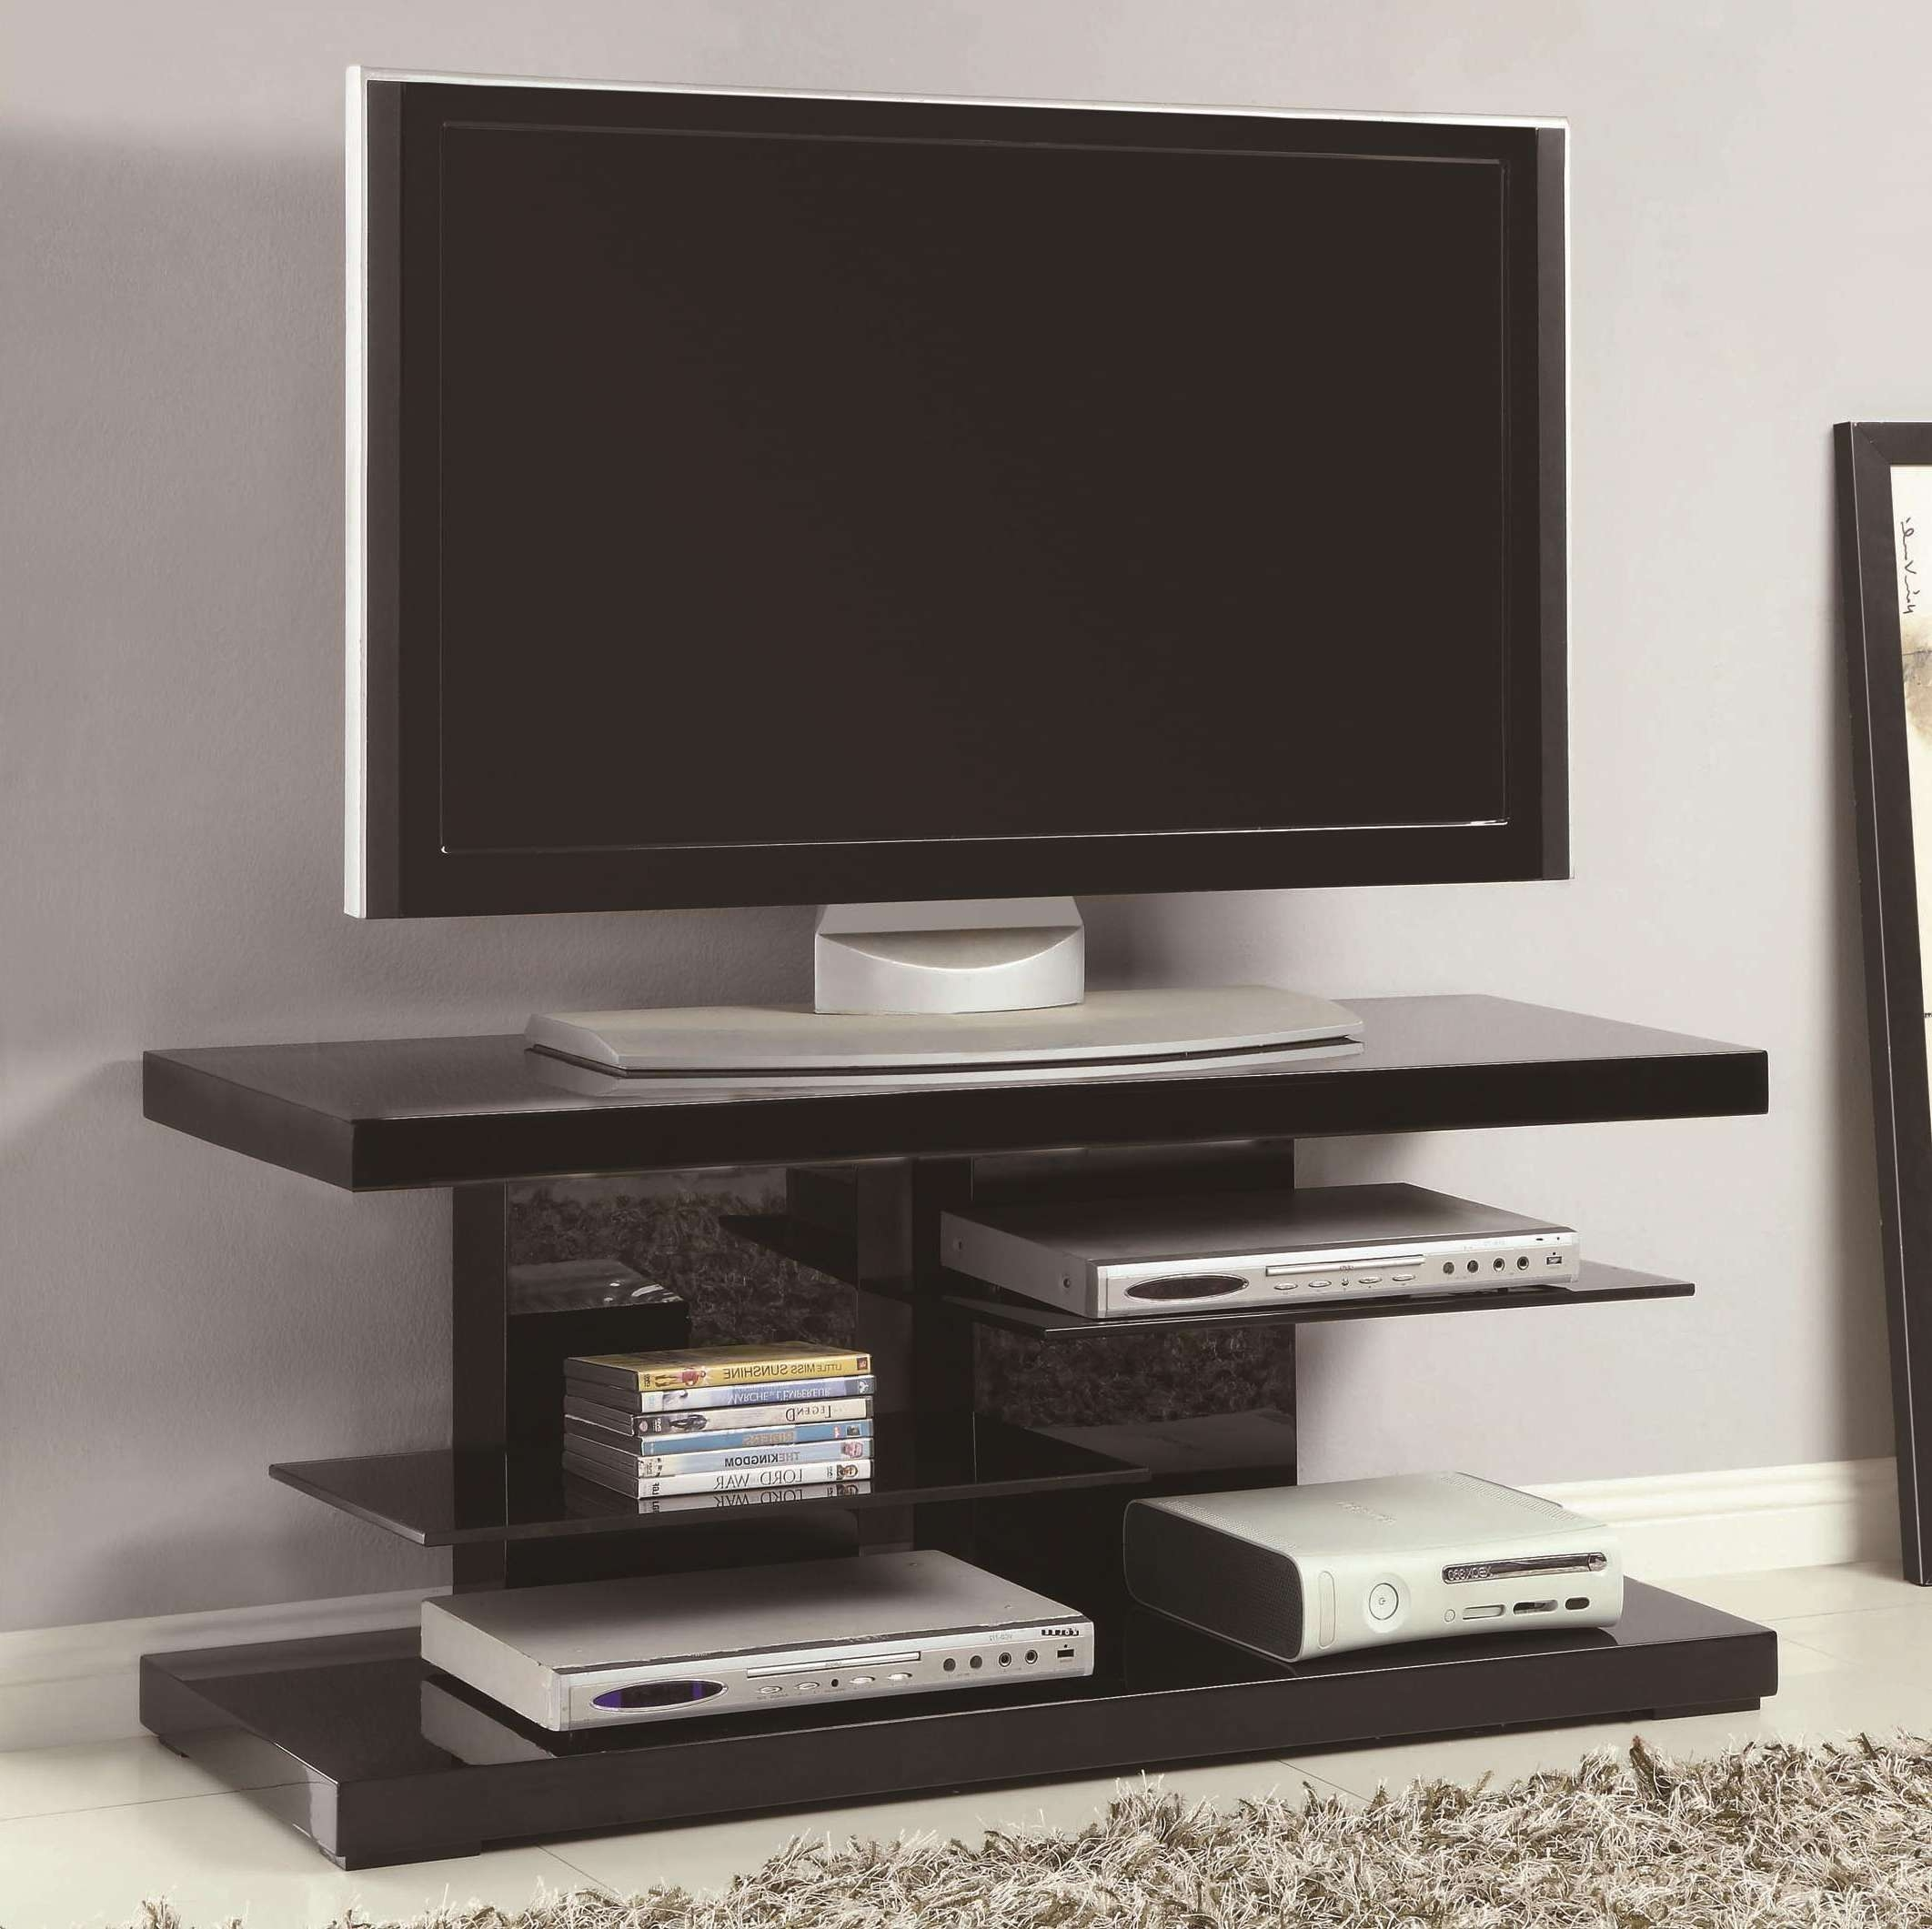 Best Contemporary Tv Console For Flat Screens | All Contemporary Pertaining To Contemporary Tv Stands For Flat Screens (View 1 of 20)